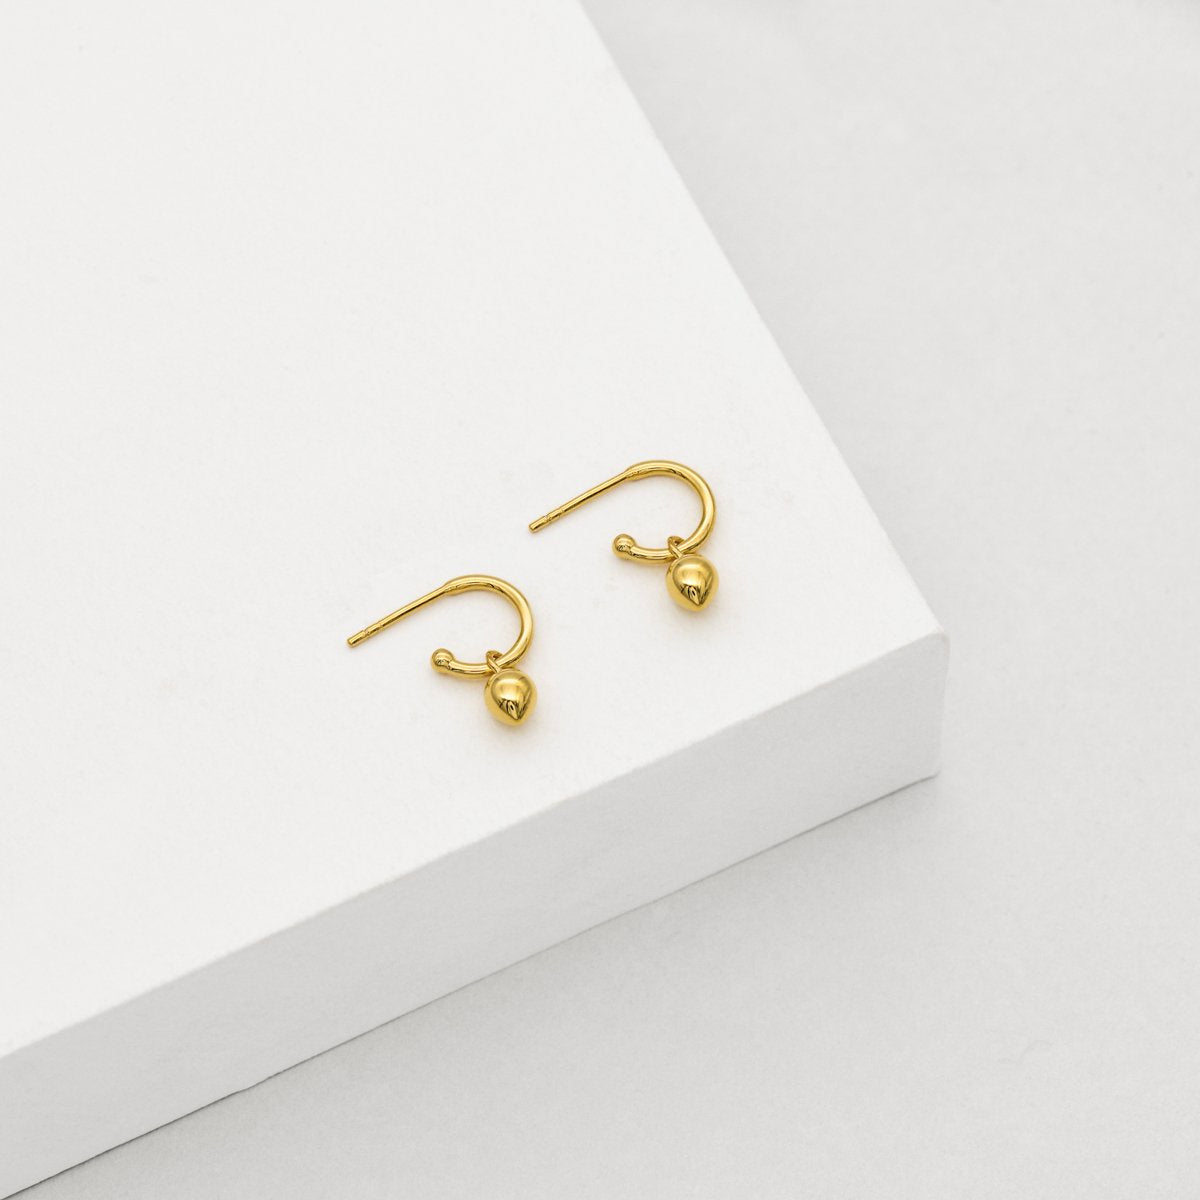 Bud Base Hoop Earrings - Yellow Gold